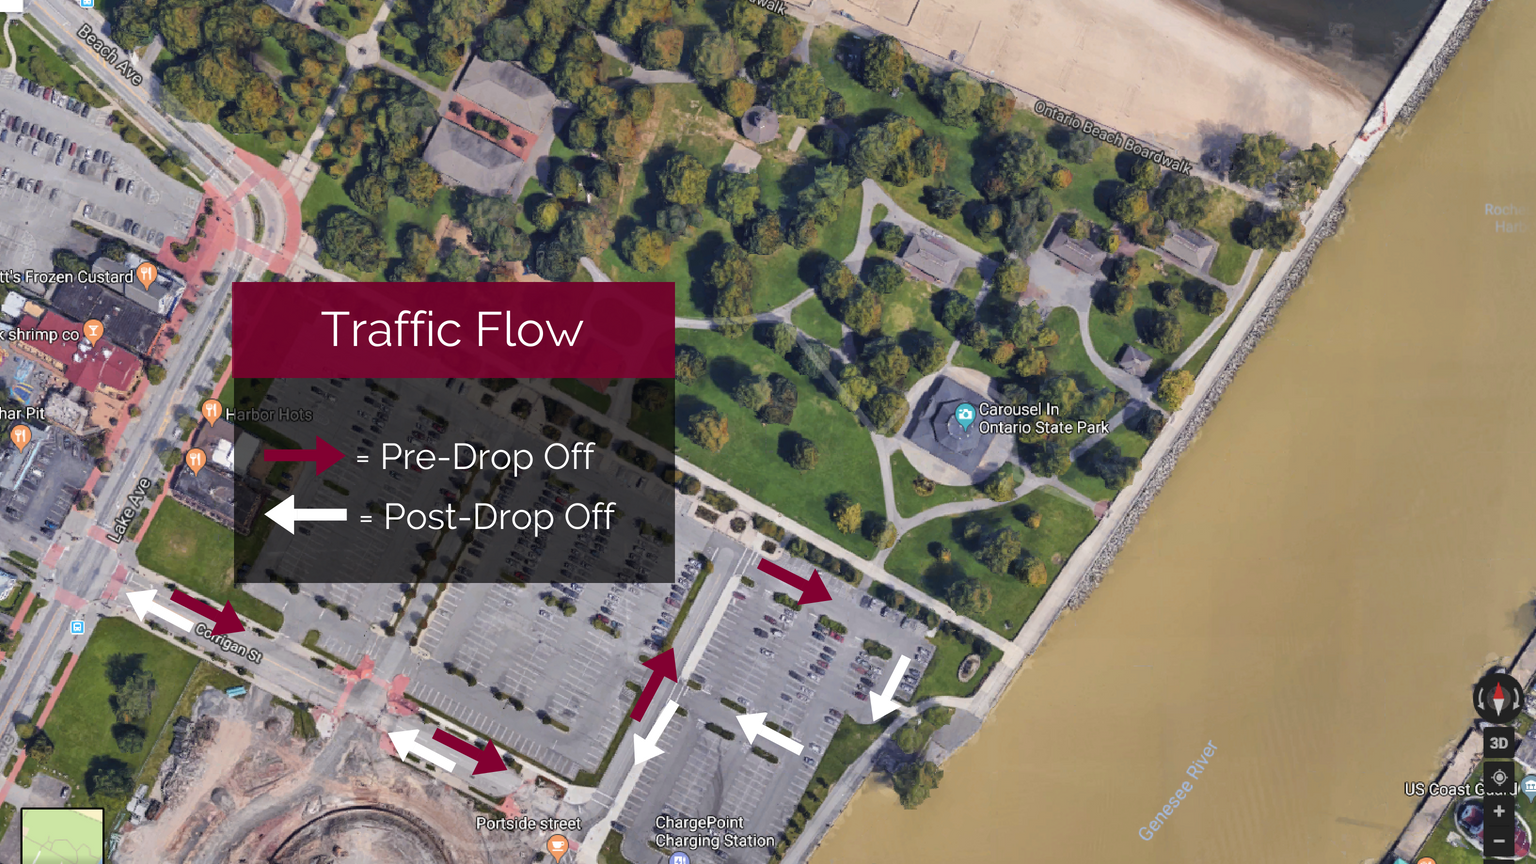 You can make your way into and out of the Charlotte Beach Parking lot following this traffic flow diagram. You'll see a group of volunteers with signs helping point you in the right direction at each turn. Check out the traffic flow team placement below to know where to look for our volunteers as you make your way into the parking lot. Here's where our flow team will be placed throughout the parking lot: